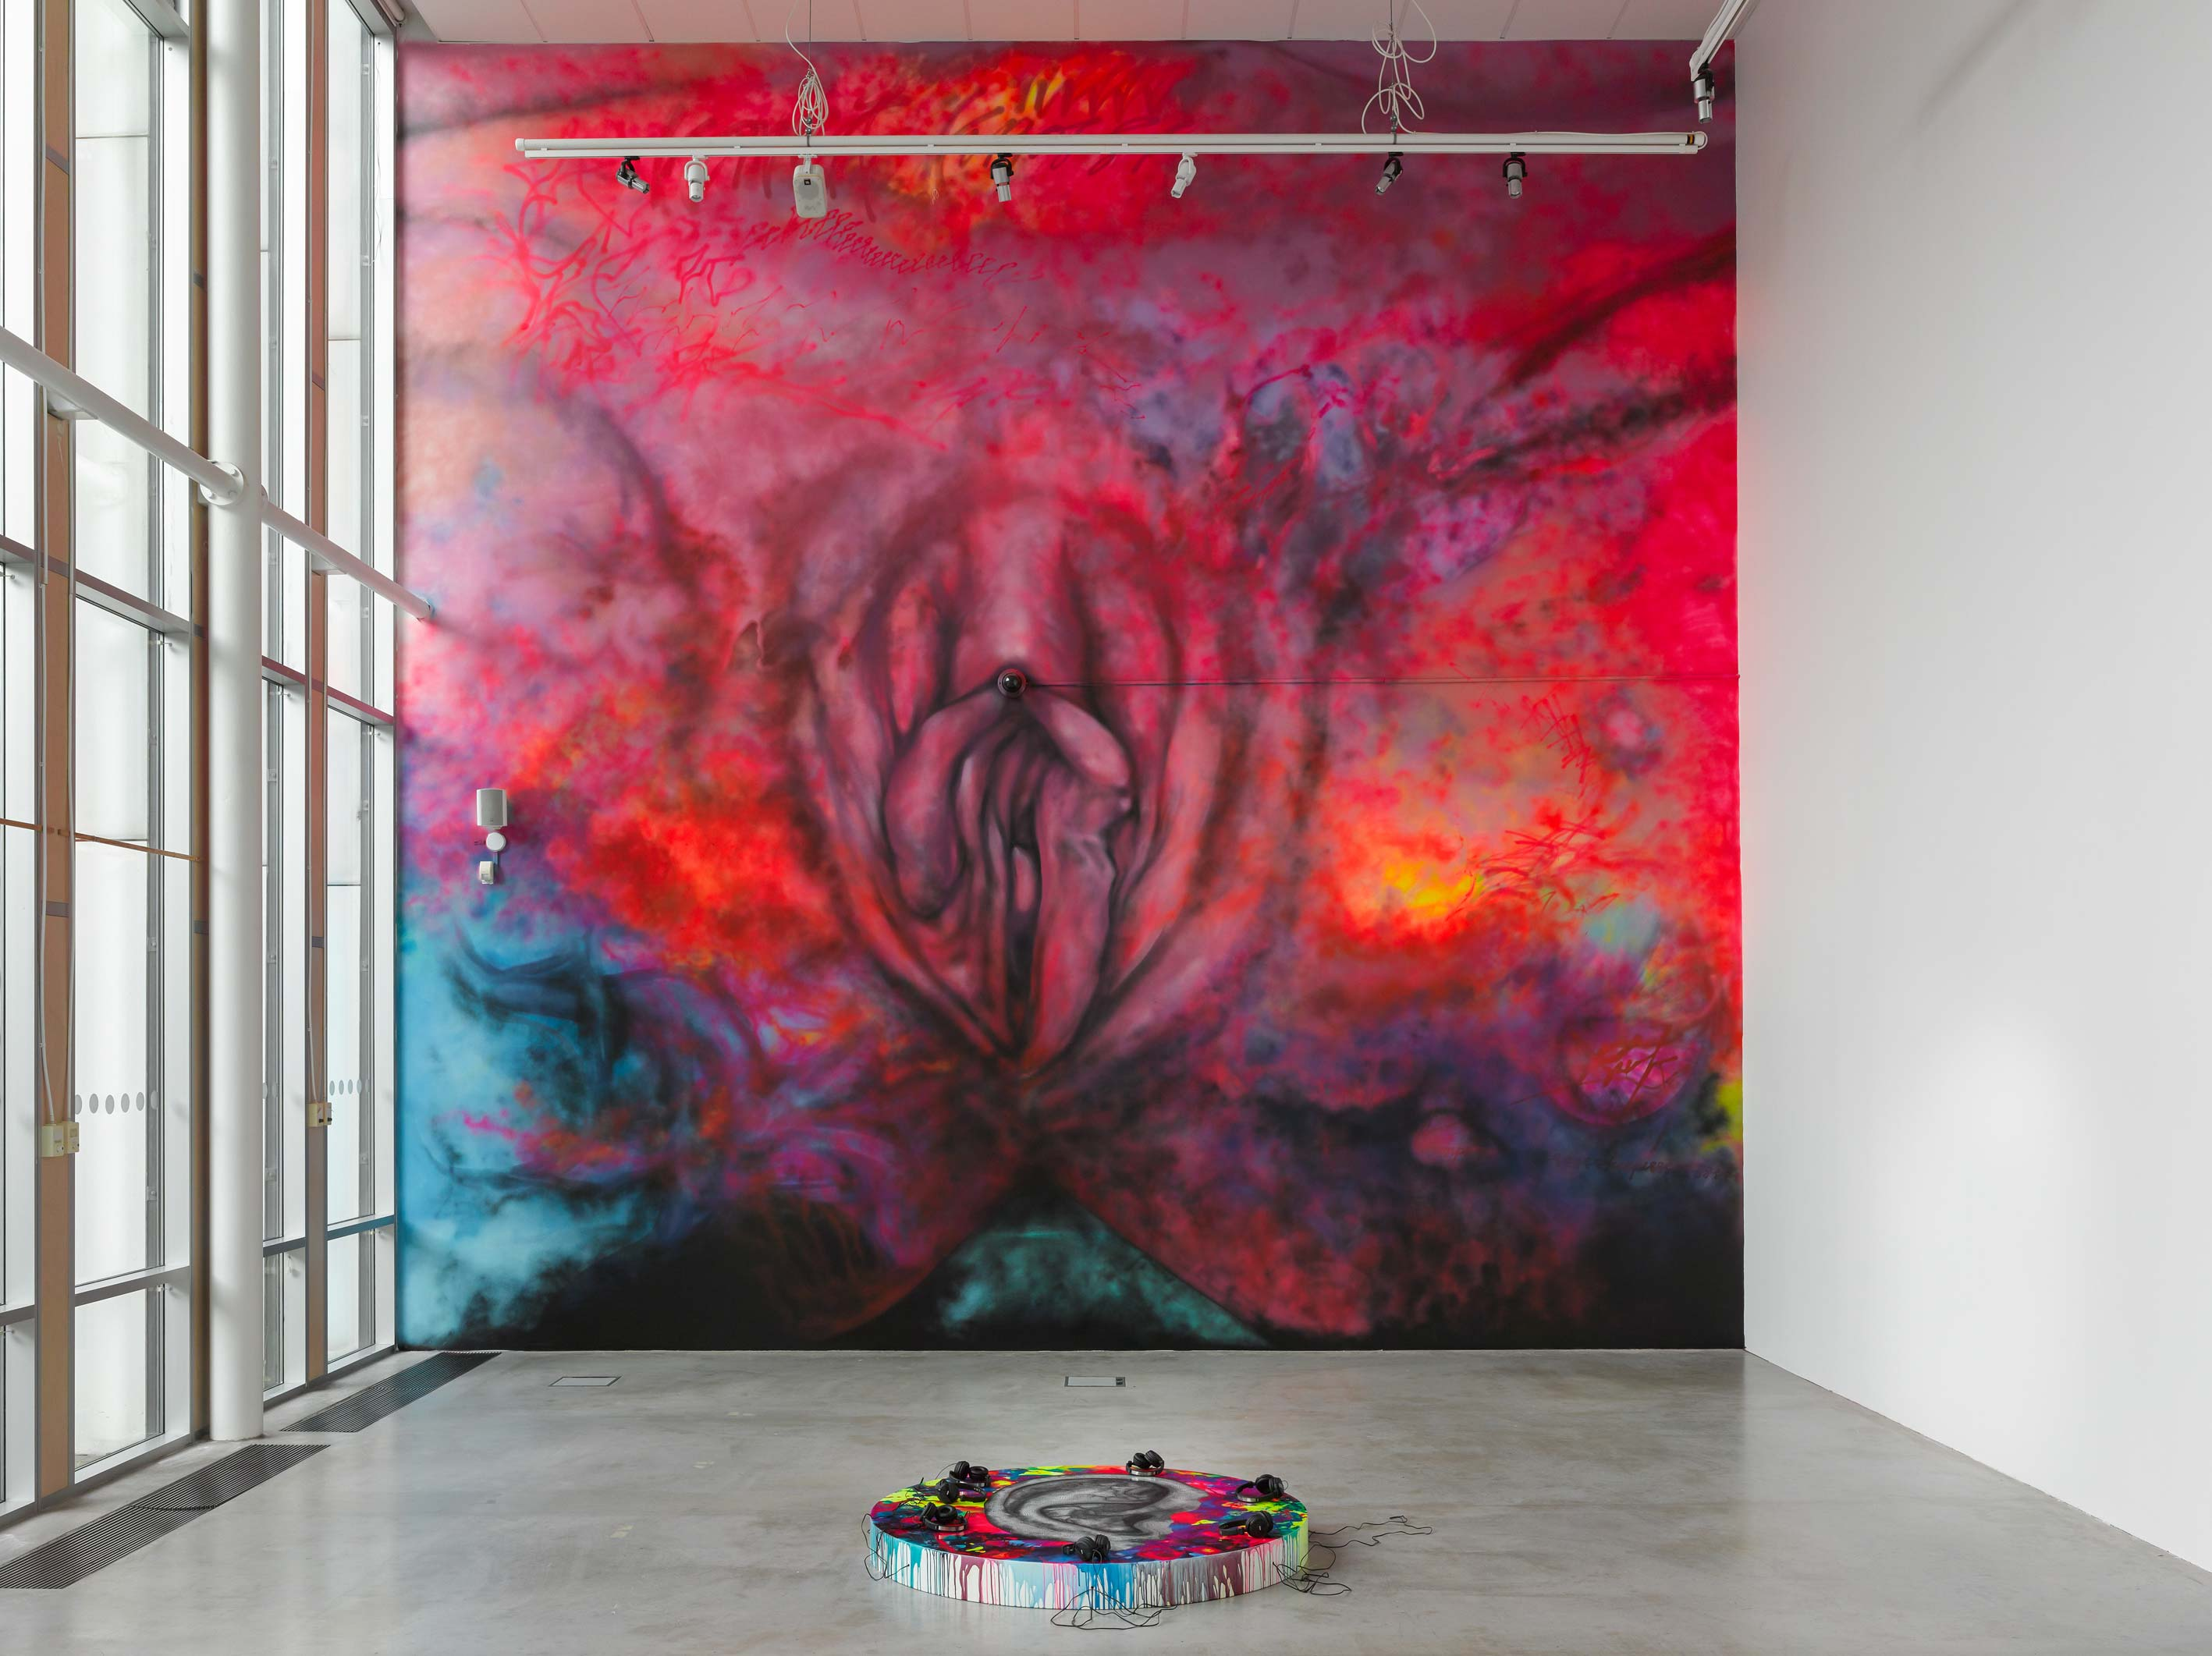 Carolina Falkholt, Ear 2 The Ground, 2016, painting, sculpture and sound installation at Kungälvs Konsthall, Kungälv, Sweden.